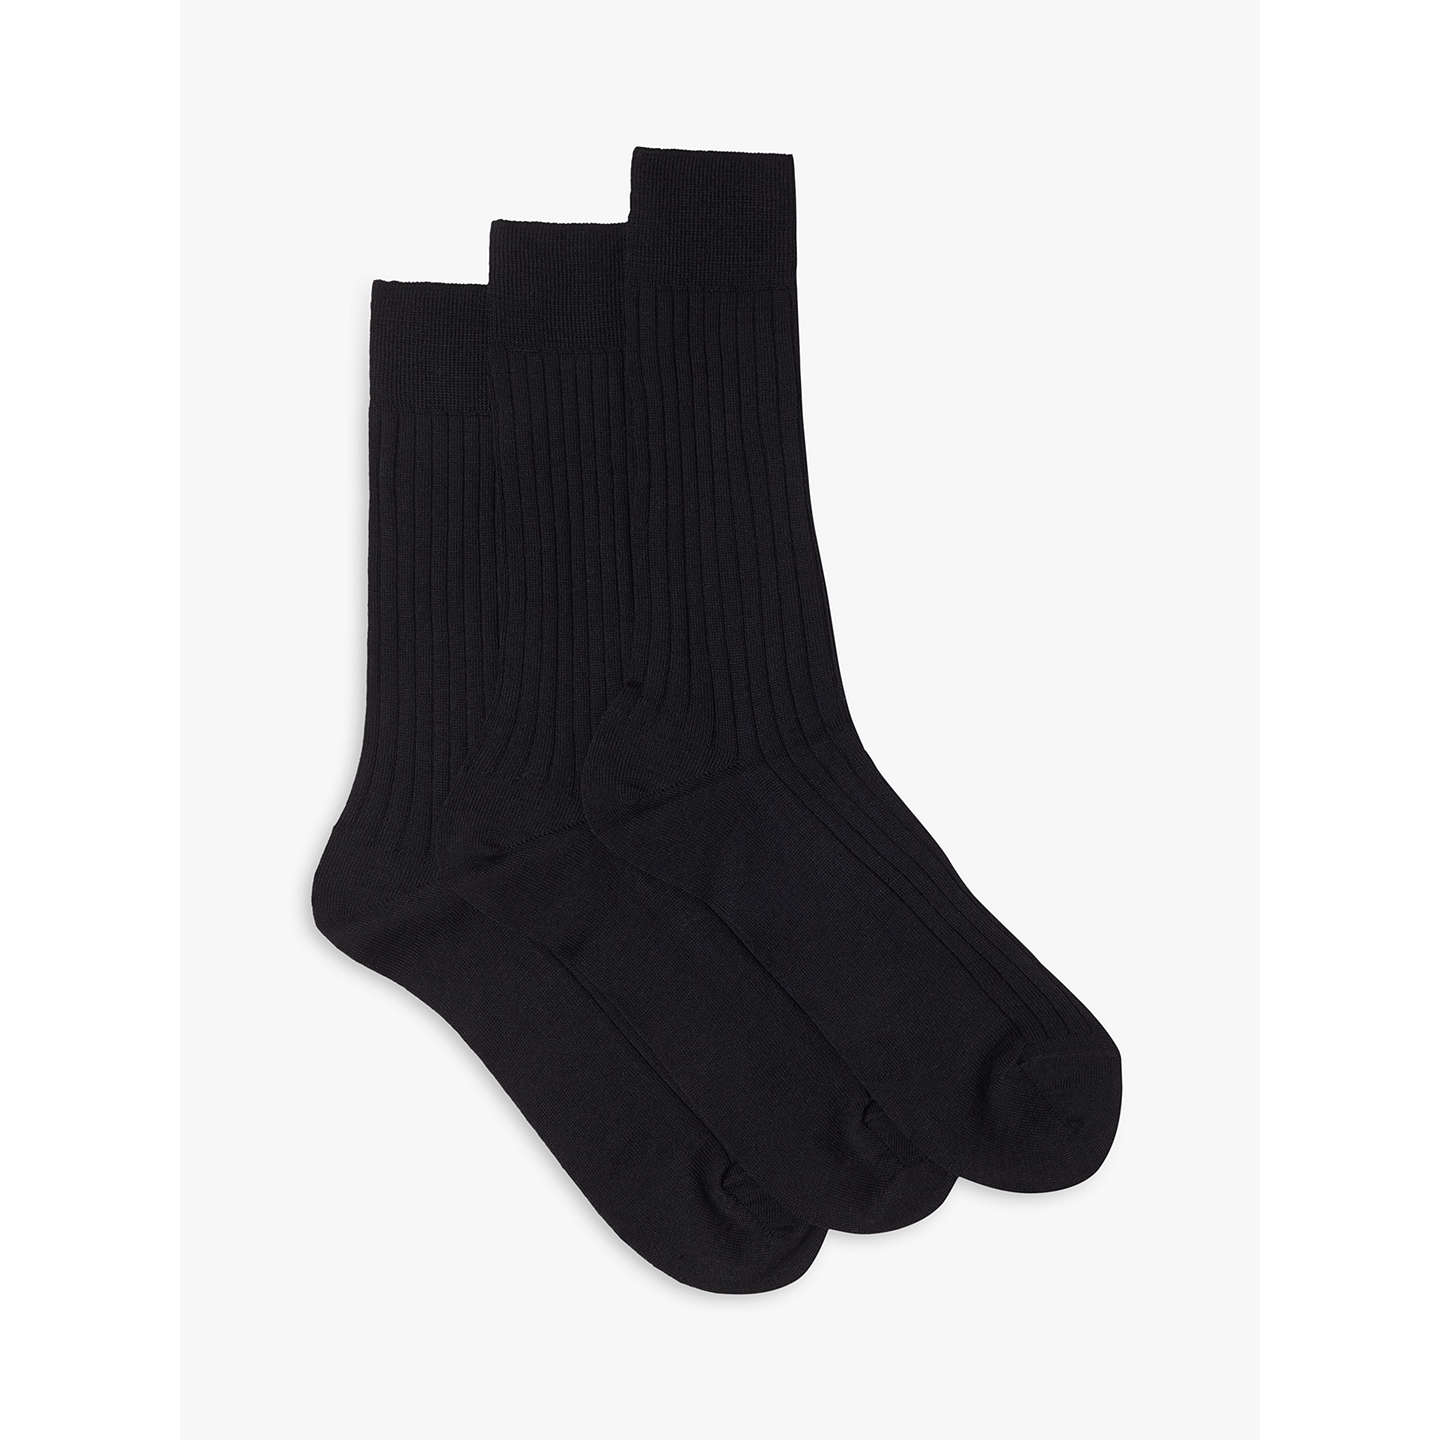 BuyJohn Lewis Made in Italy Wool Rich Ribbed Socks, Pack of 3, Black, S Online at johnlewis.com